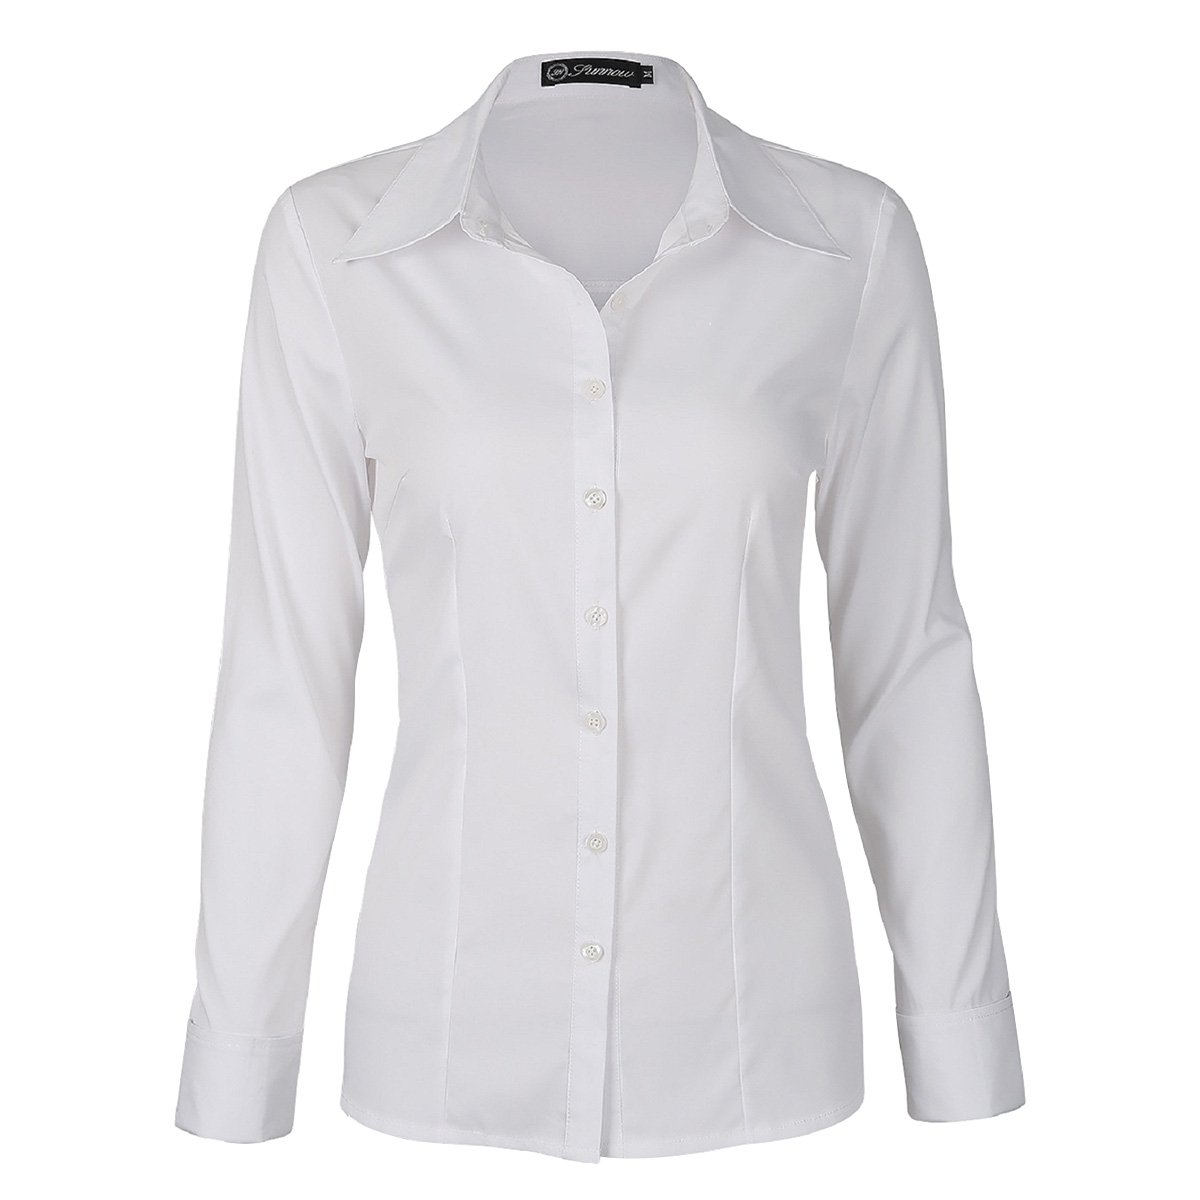 Sunnow Women Simple White Collared Long Sleeves Button Down Shirt